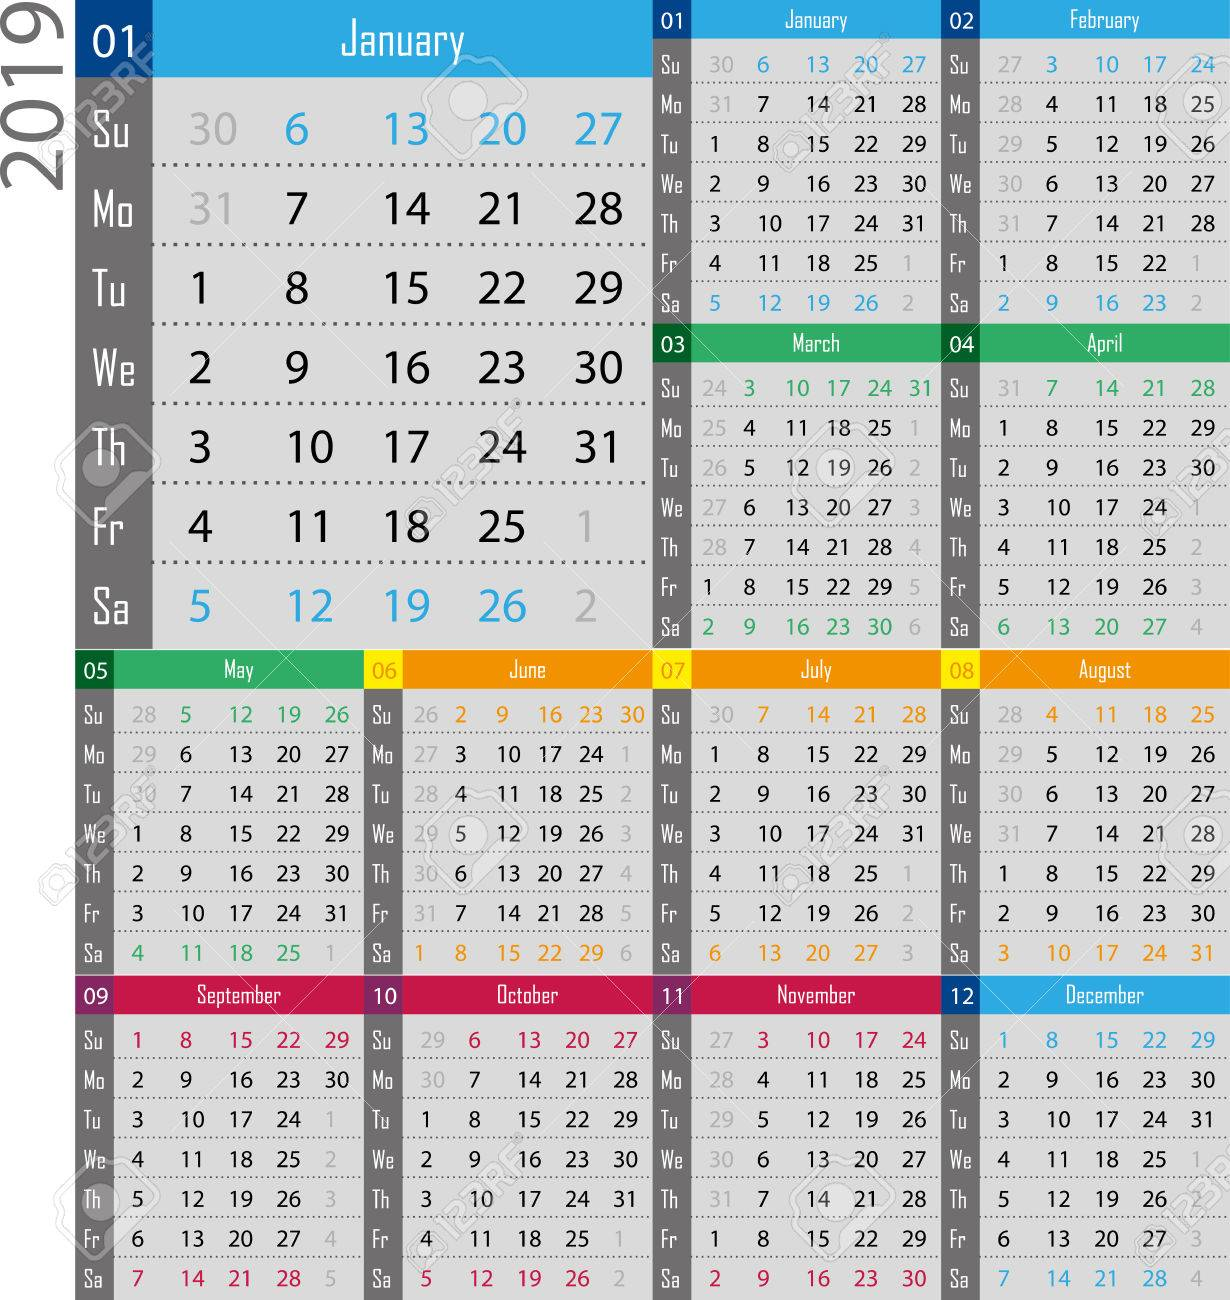 Calendar For The Year 2019 Royalty Free Cliparts, Vectors, And Stock ...